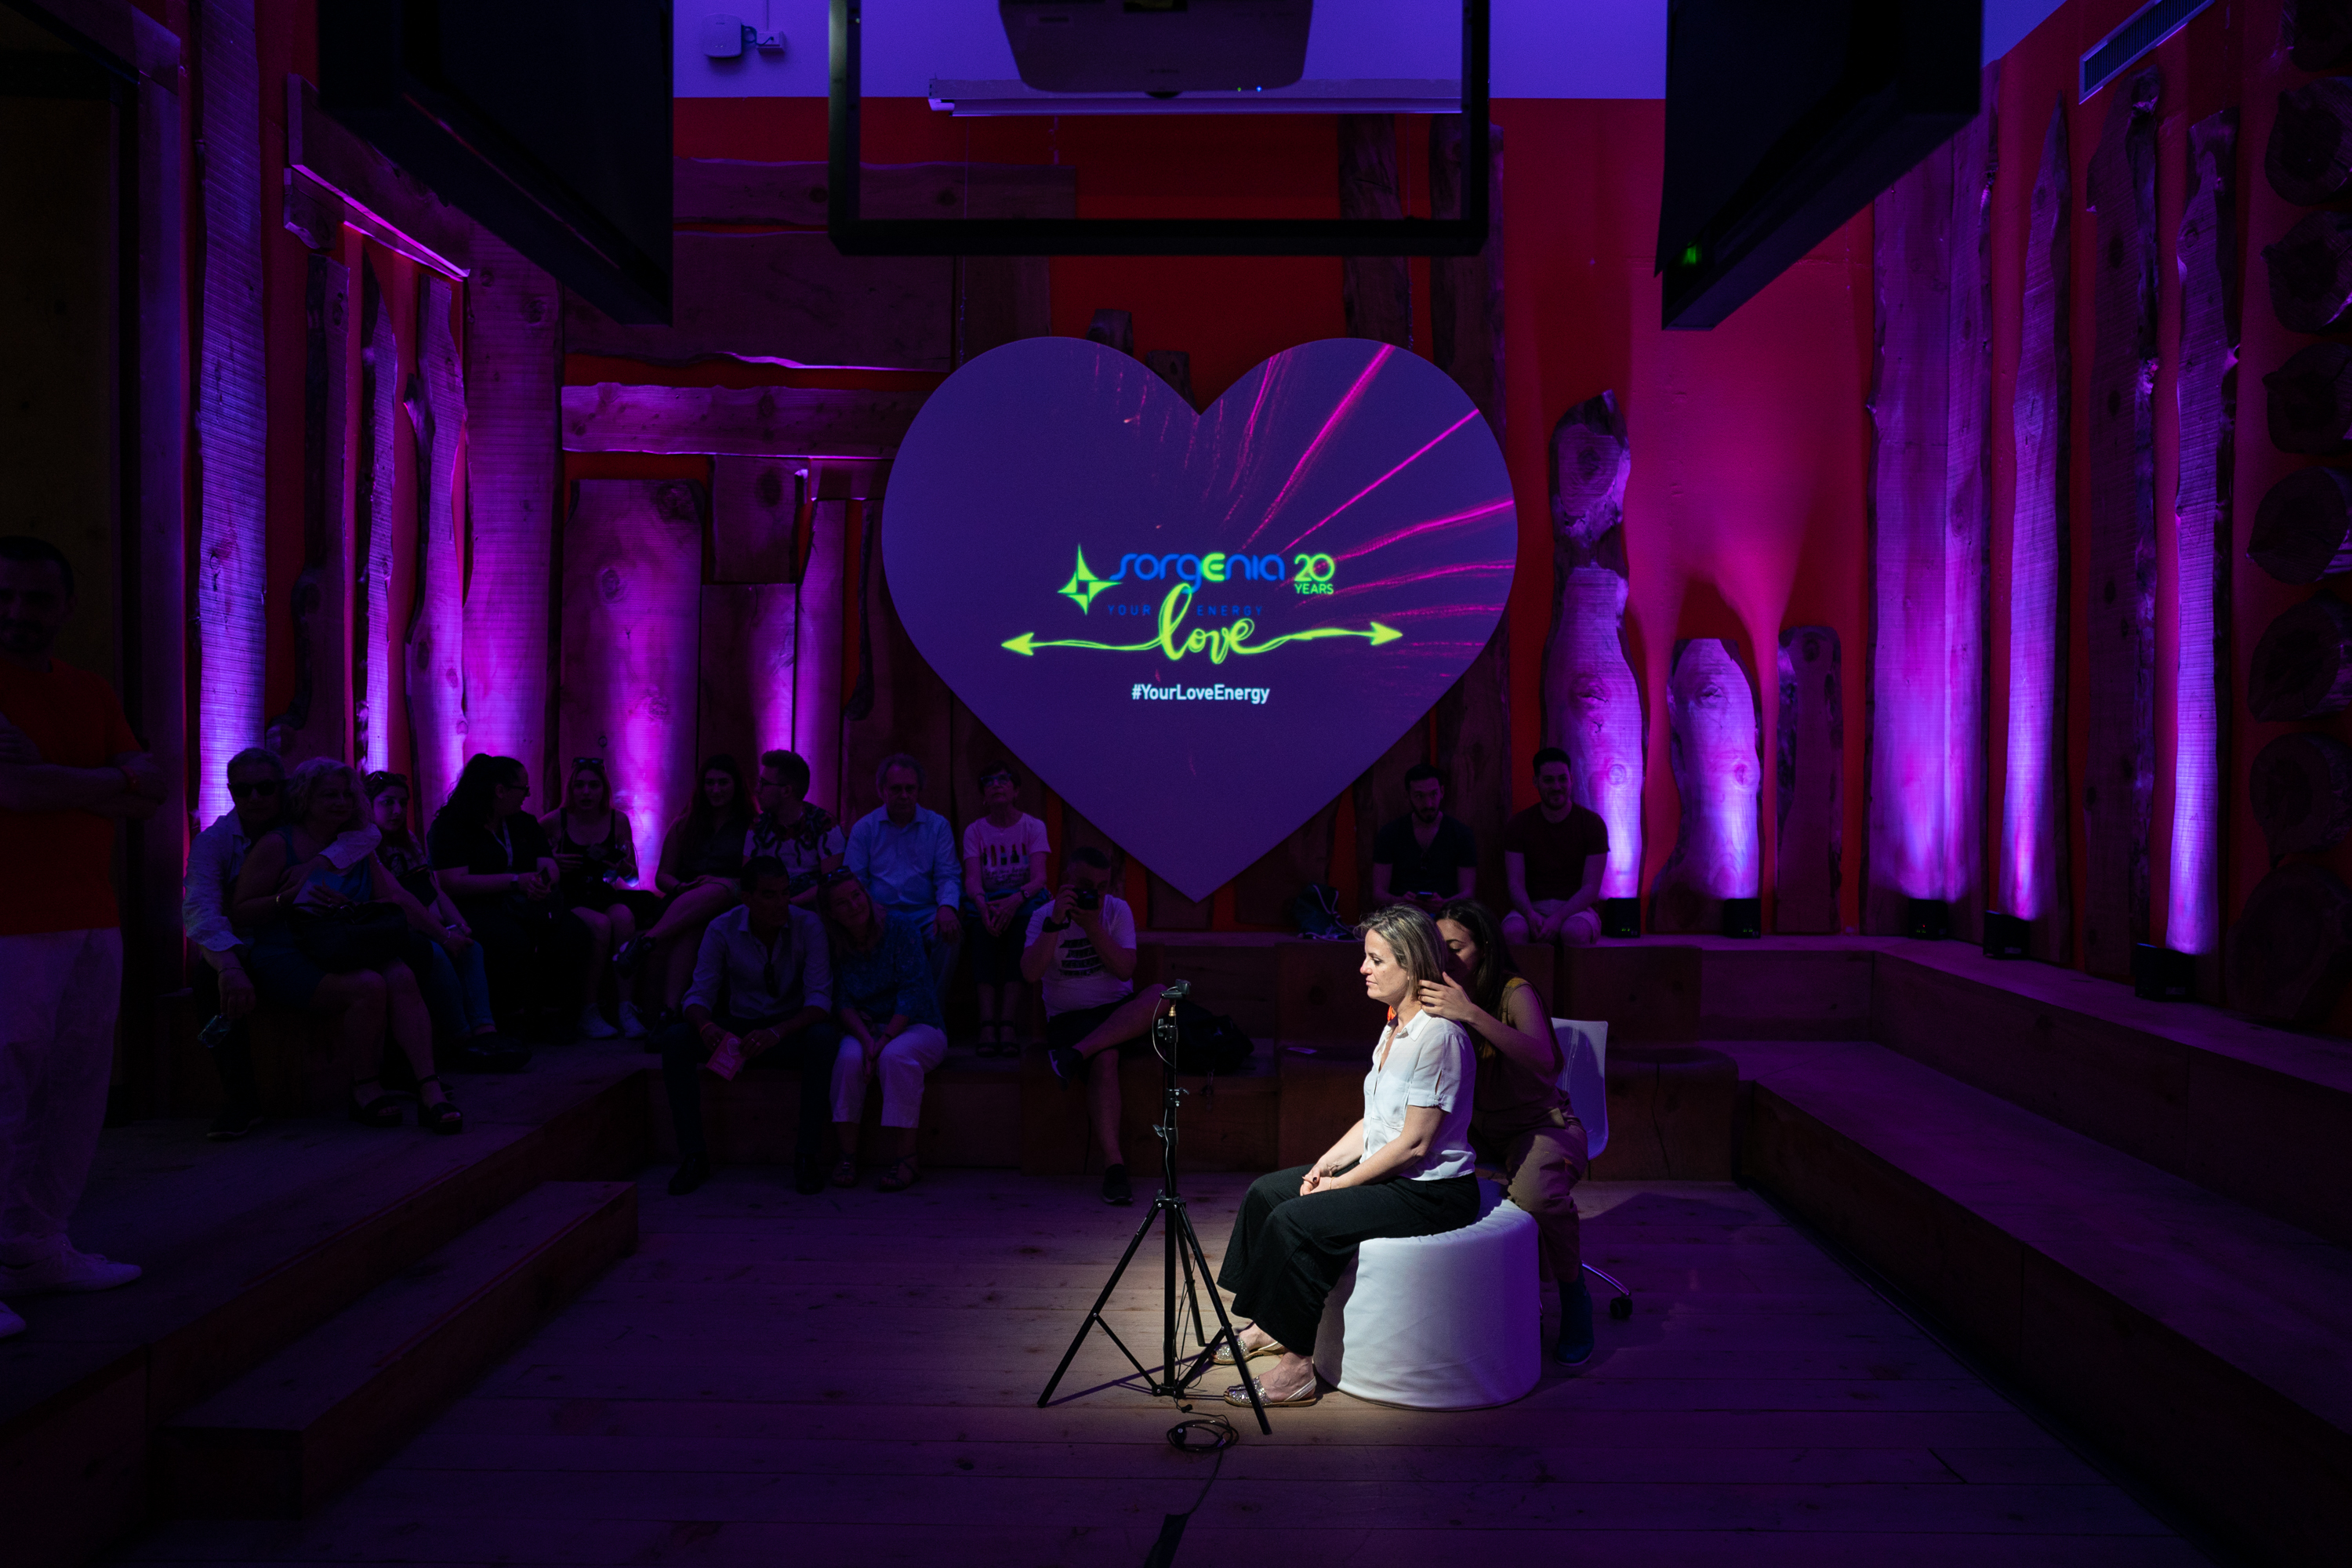 Love is a changing emotion. At the Treinnale festival an interactive installation has captured the emotions of the participants thanks to Ai and returned them to the public in an impact scenario